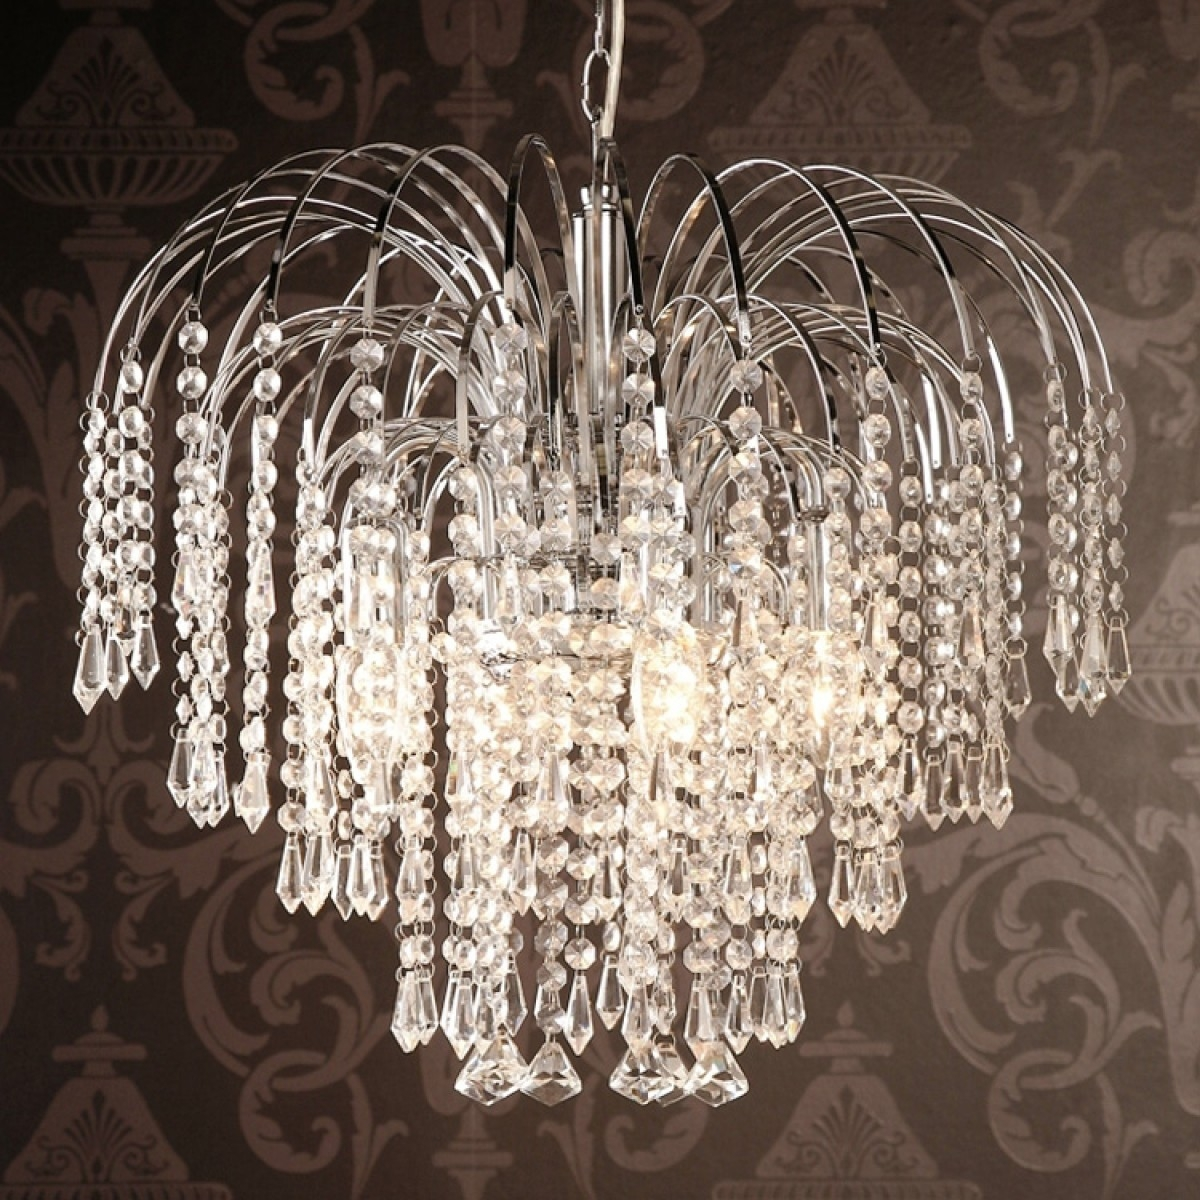 Four Light Chrome Crystal Chandelier Intended For Waterfall Crystal Chandelier (Image 9 of 15)